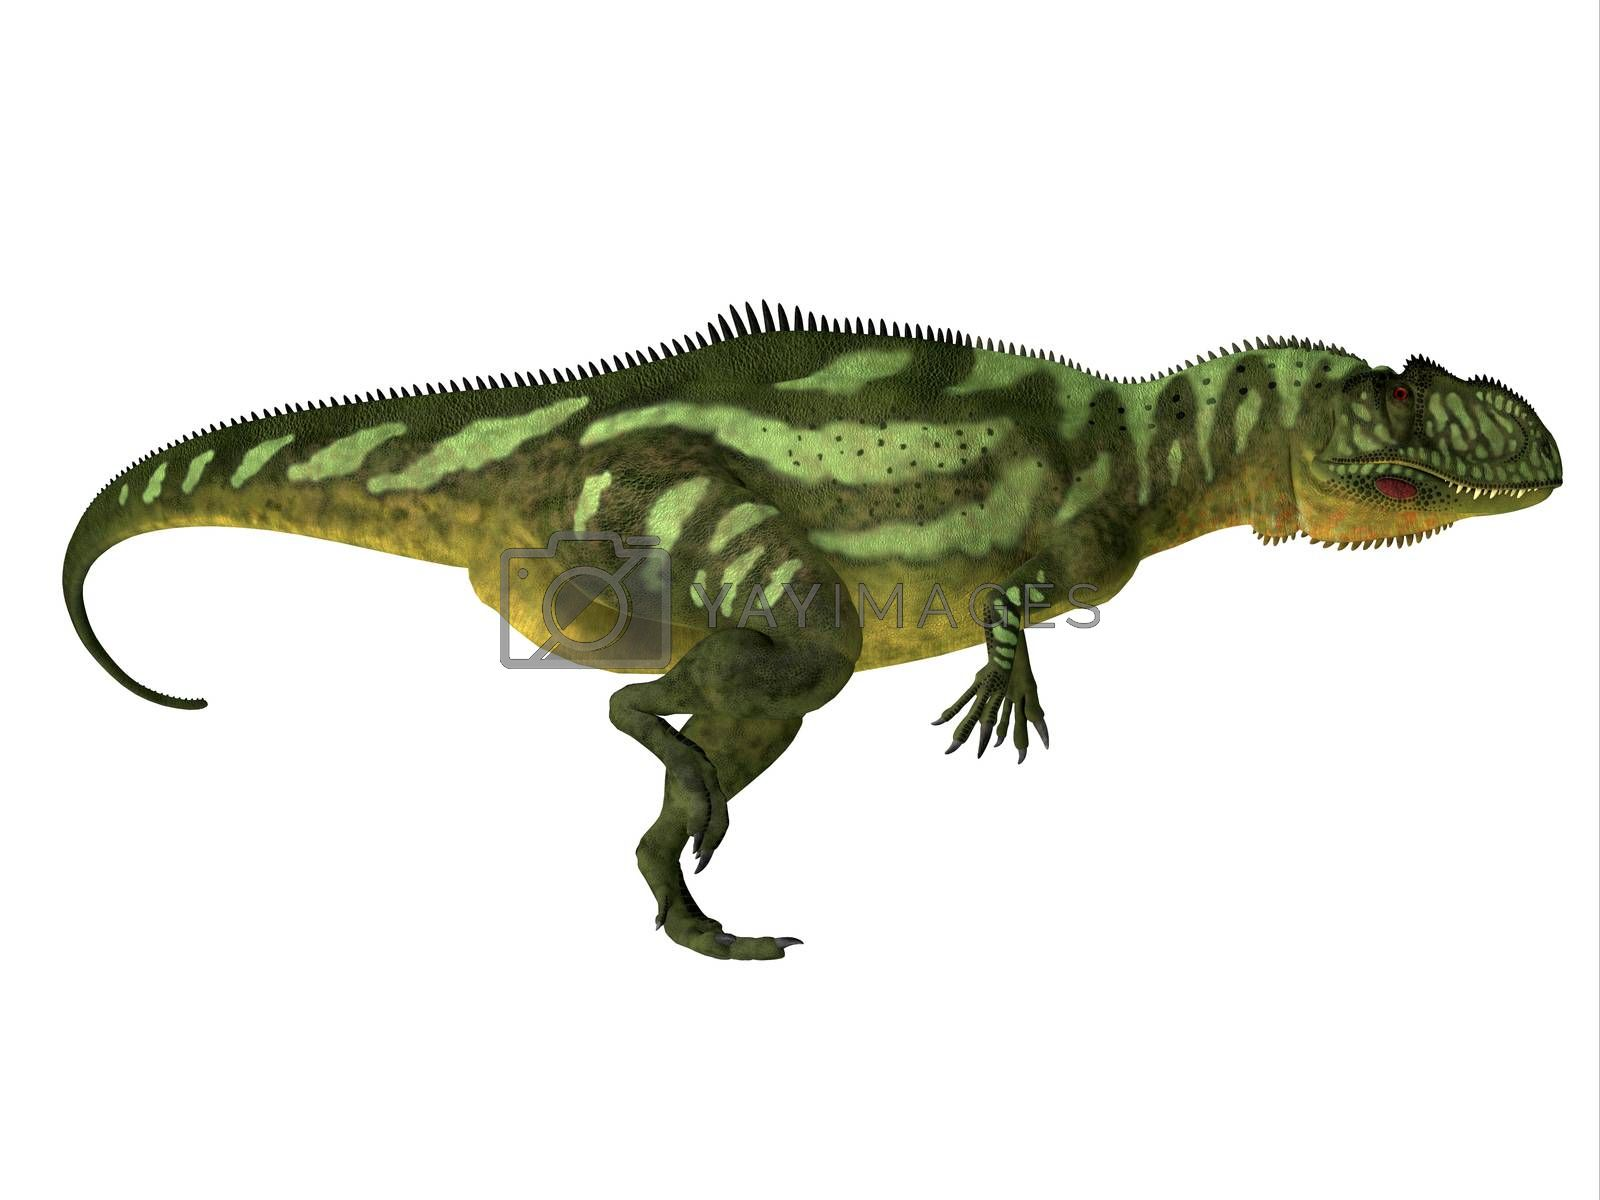 Yangchuanosaurus was a carnivorous theropod dinosaur that lived in China during the Jurassic Period.